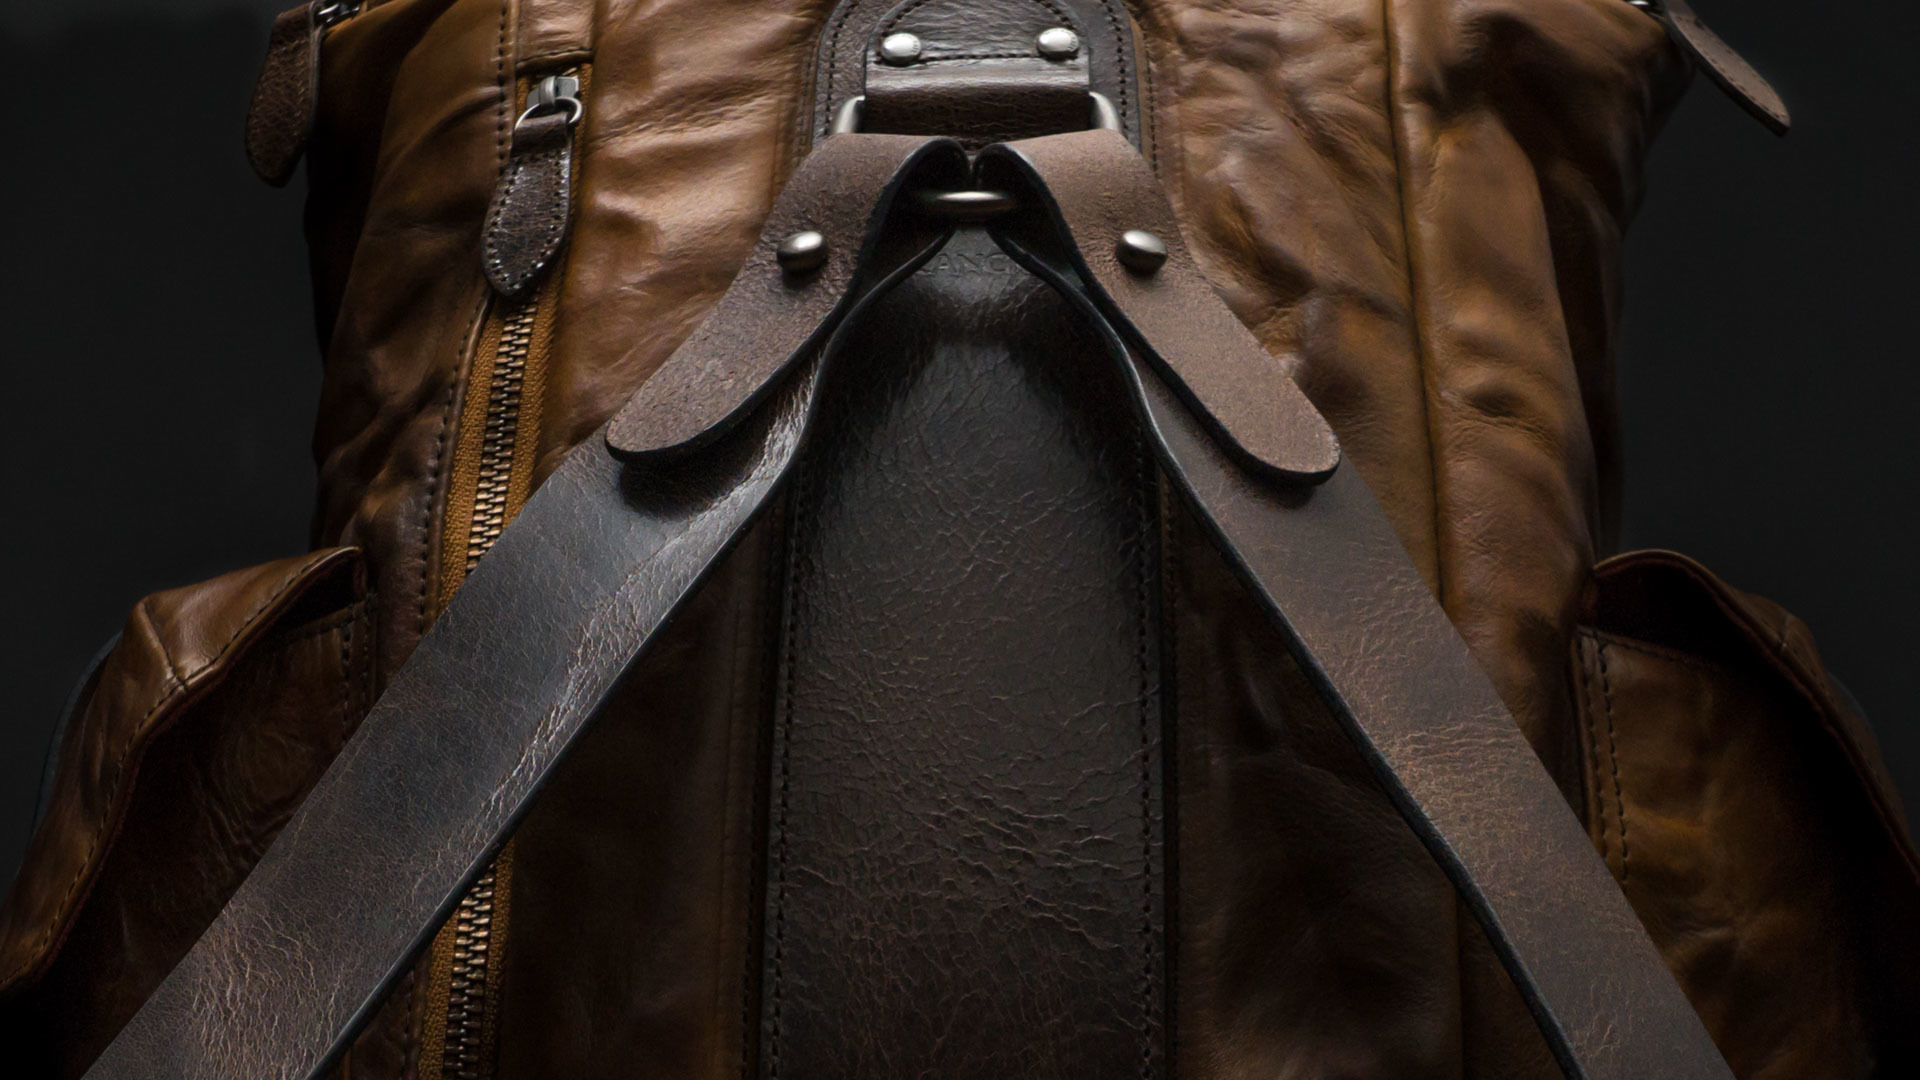 Leather shoulder straps.